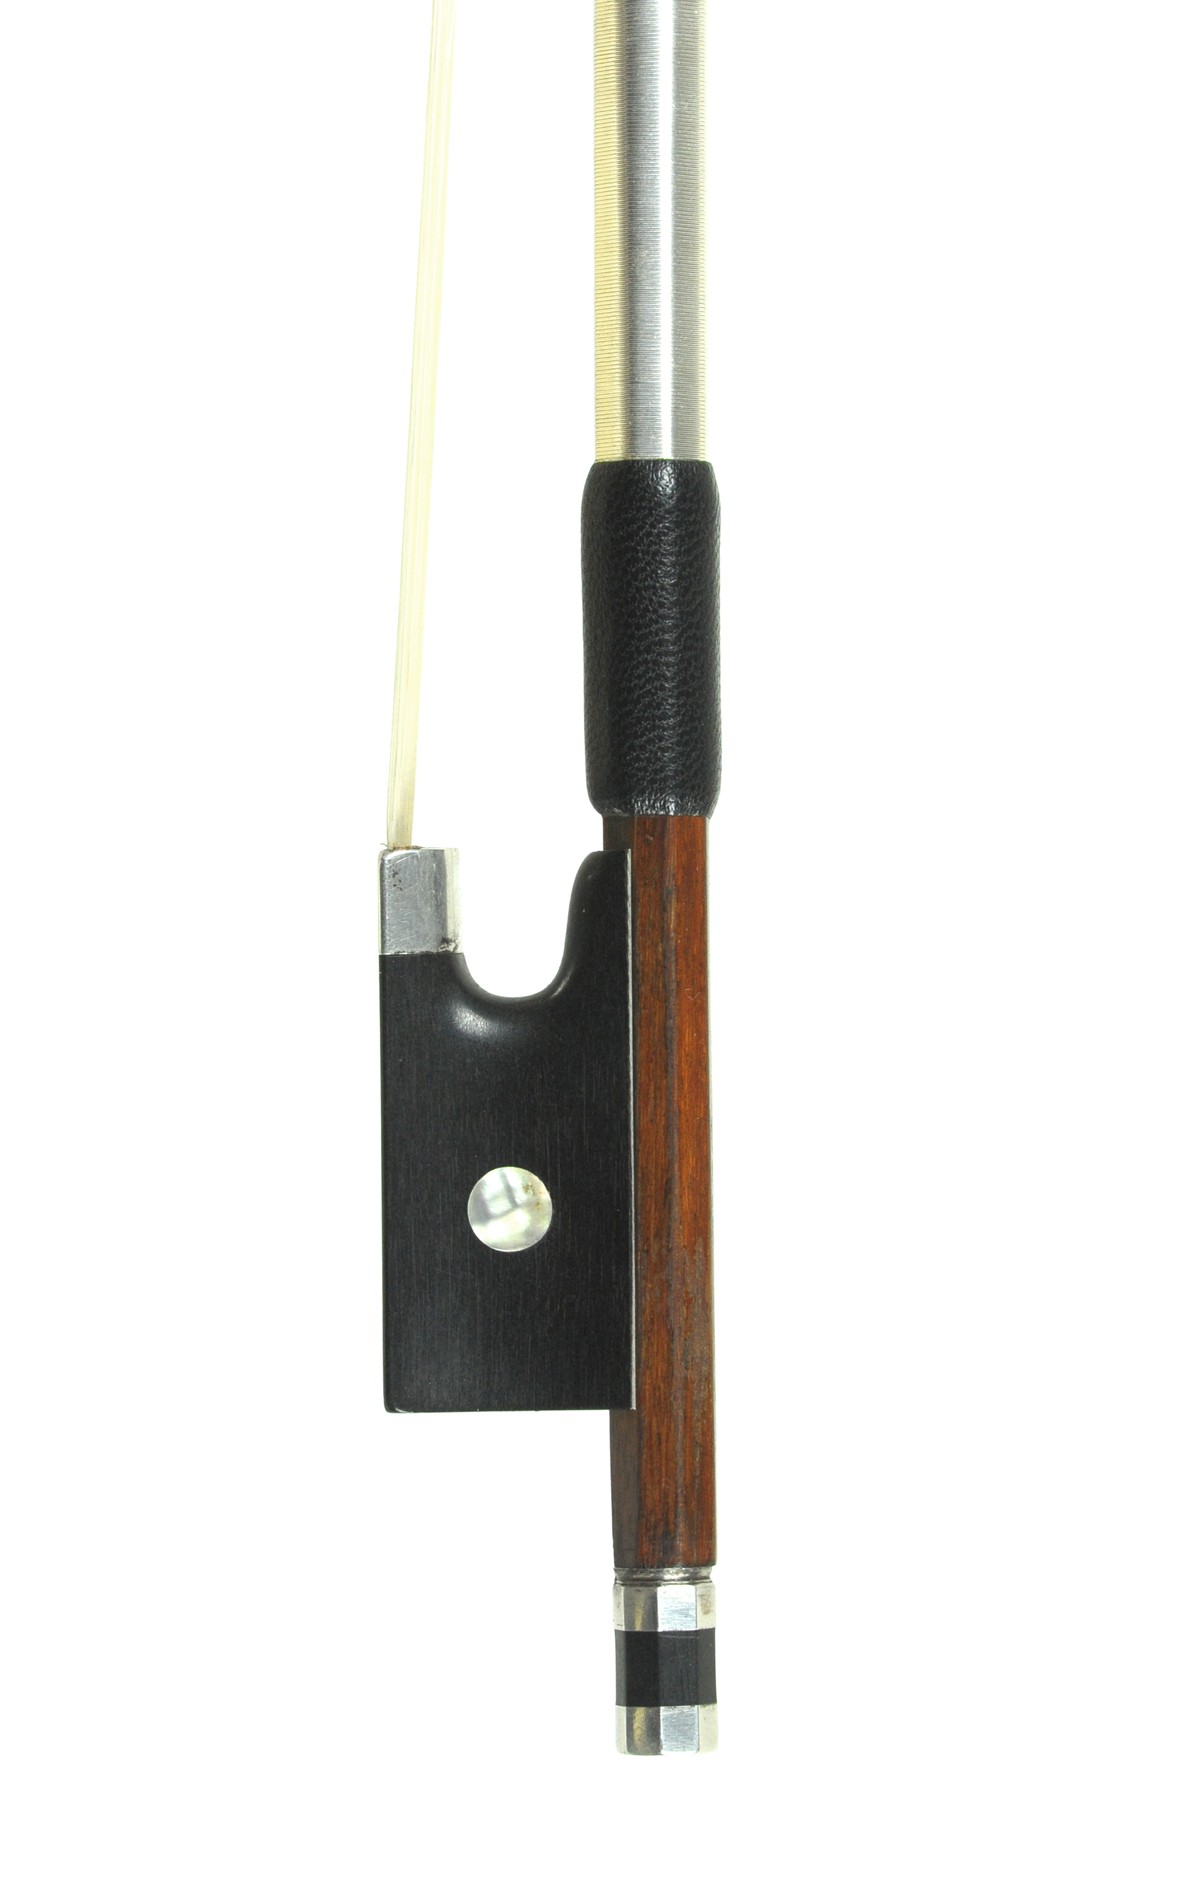 Outstanding Markneukirchen violin bow, approx. 1910 - frog